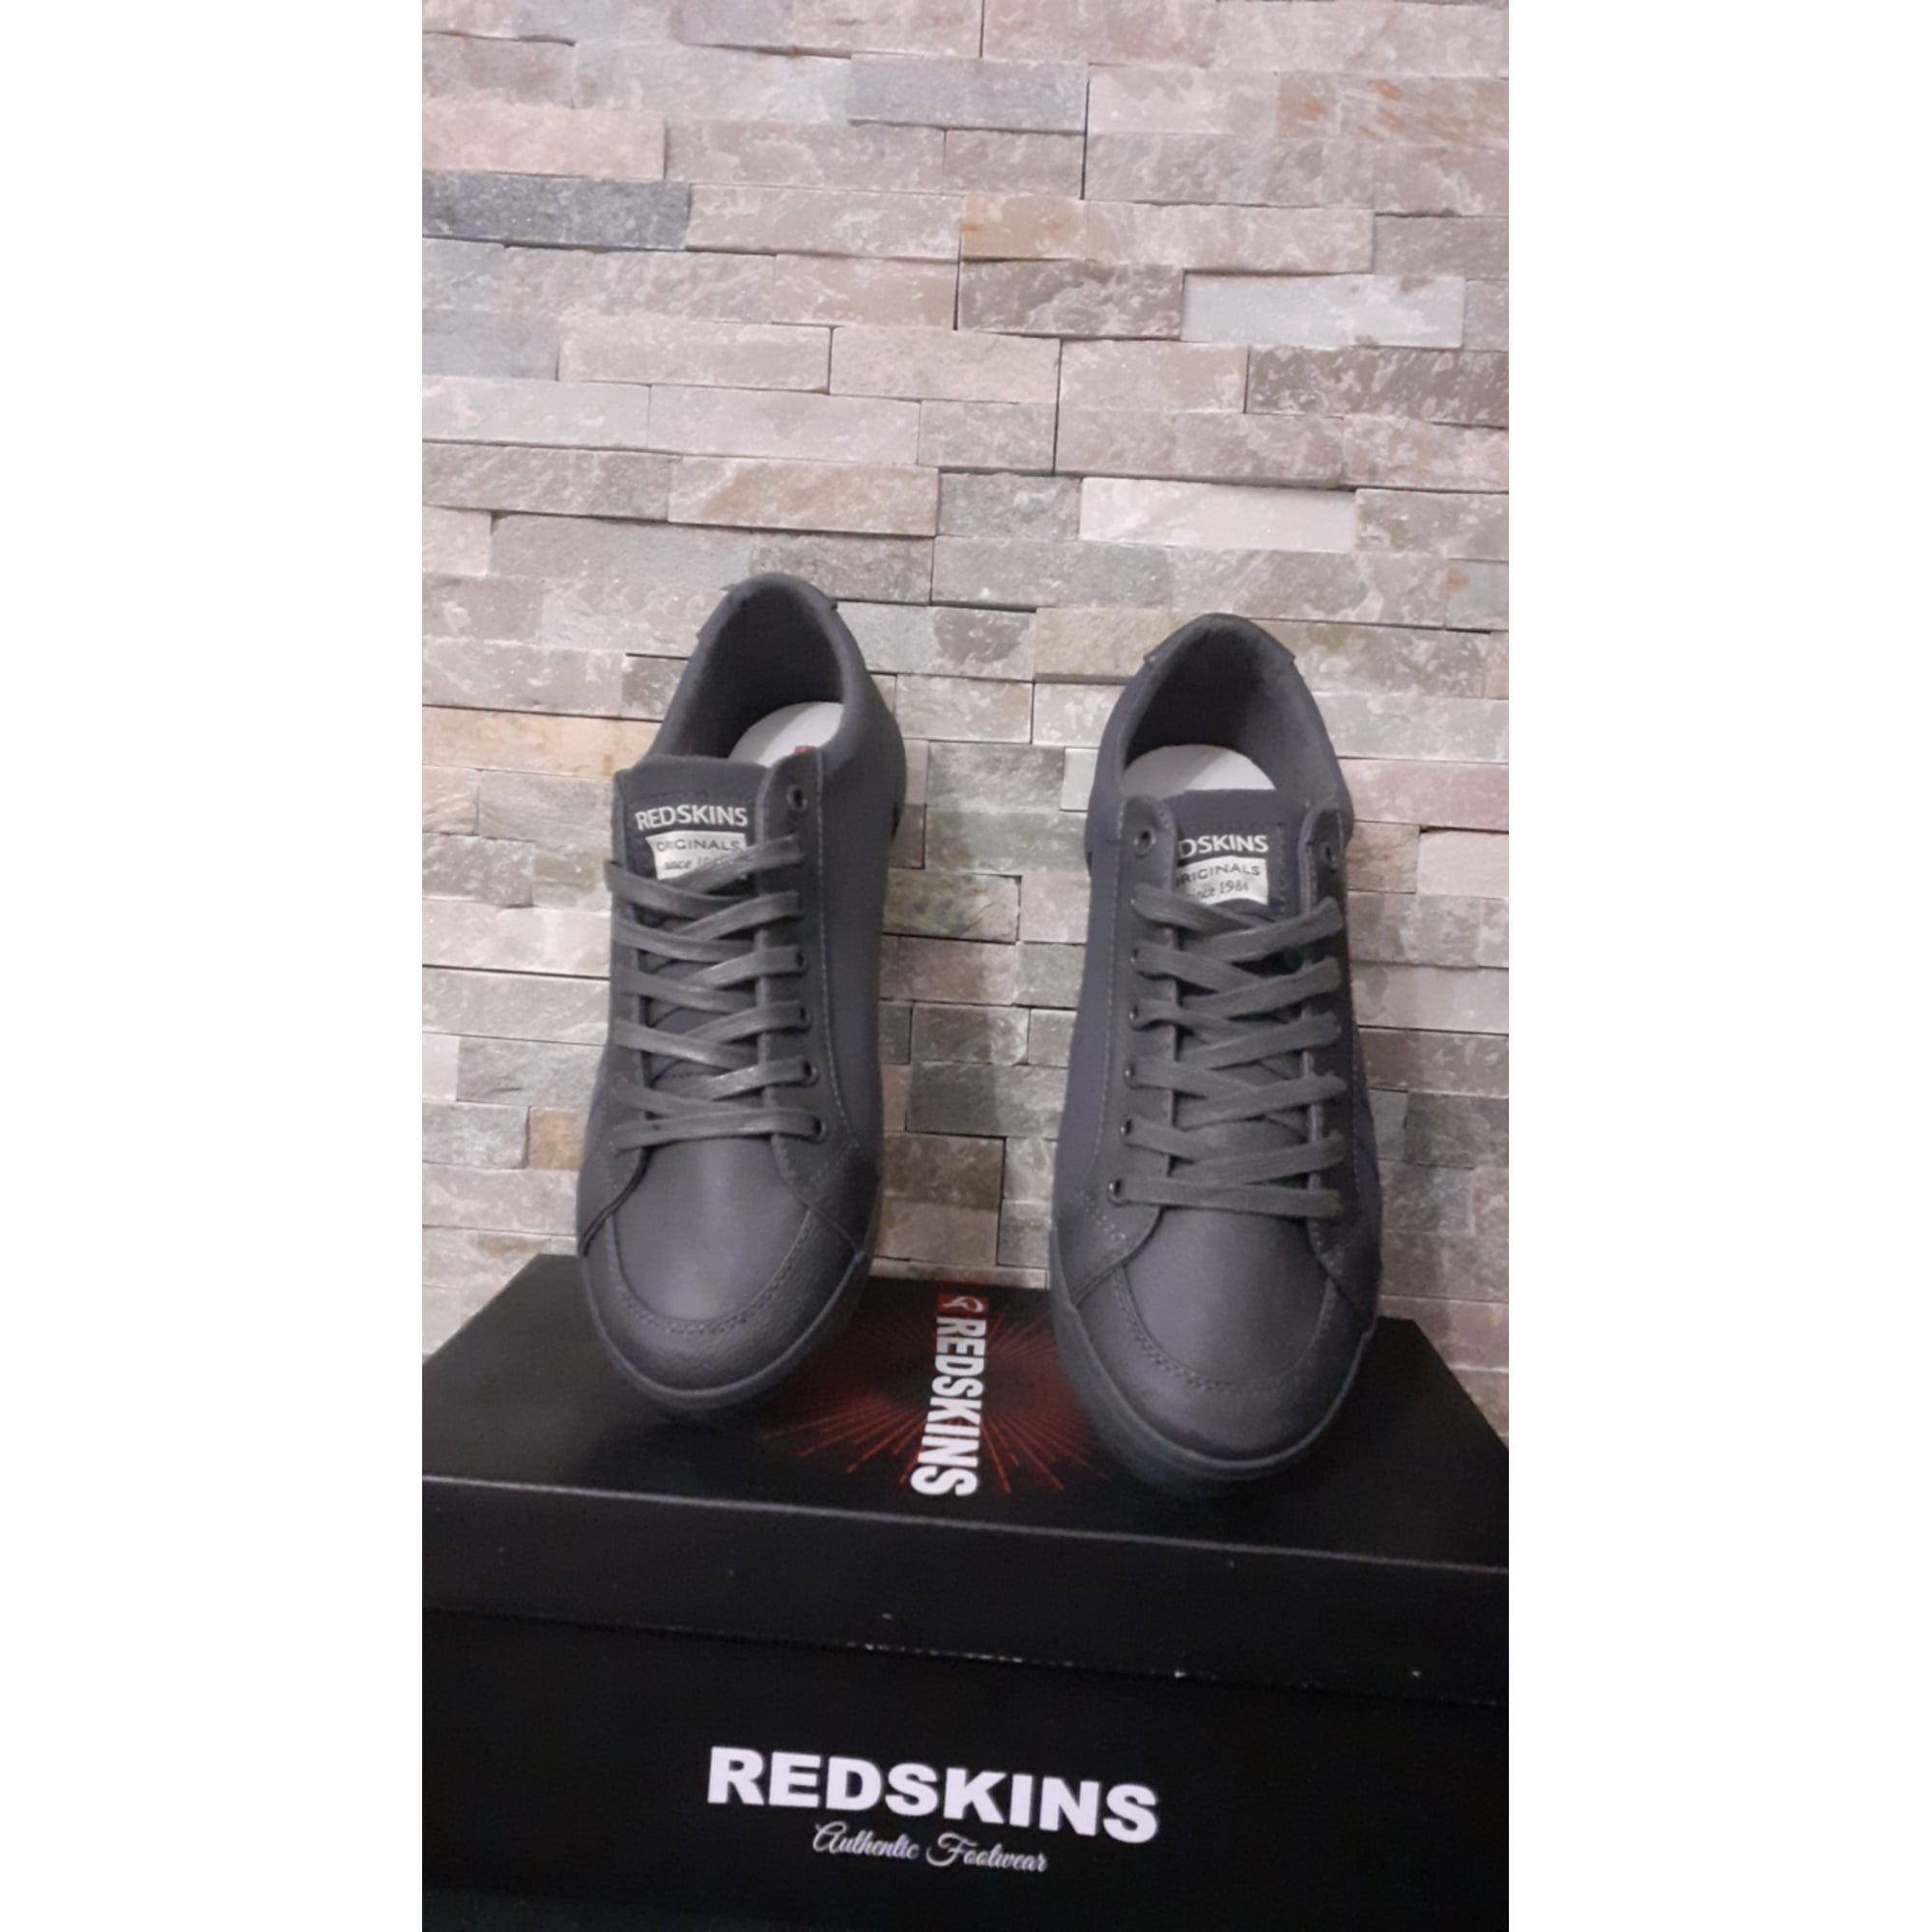 Baskets REDSKINS Gris, anthracite